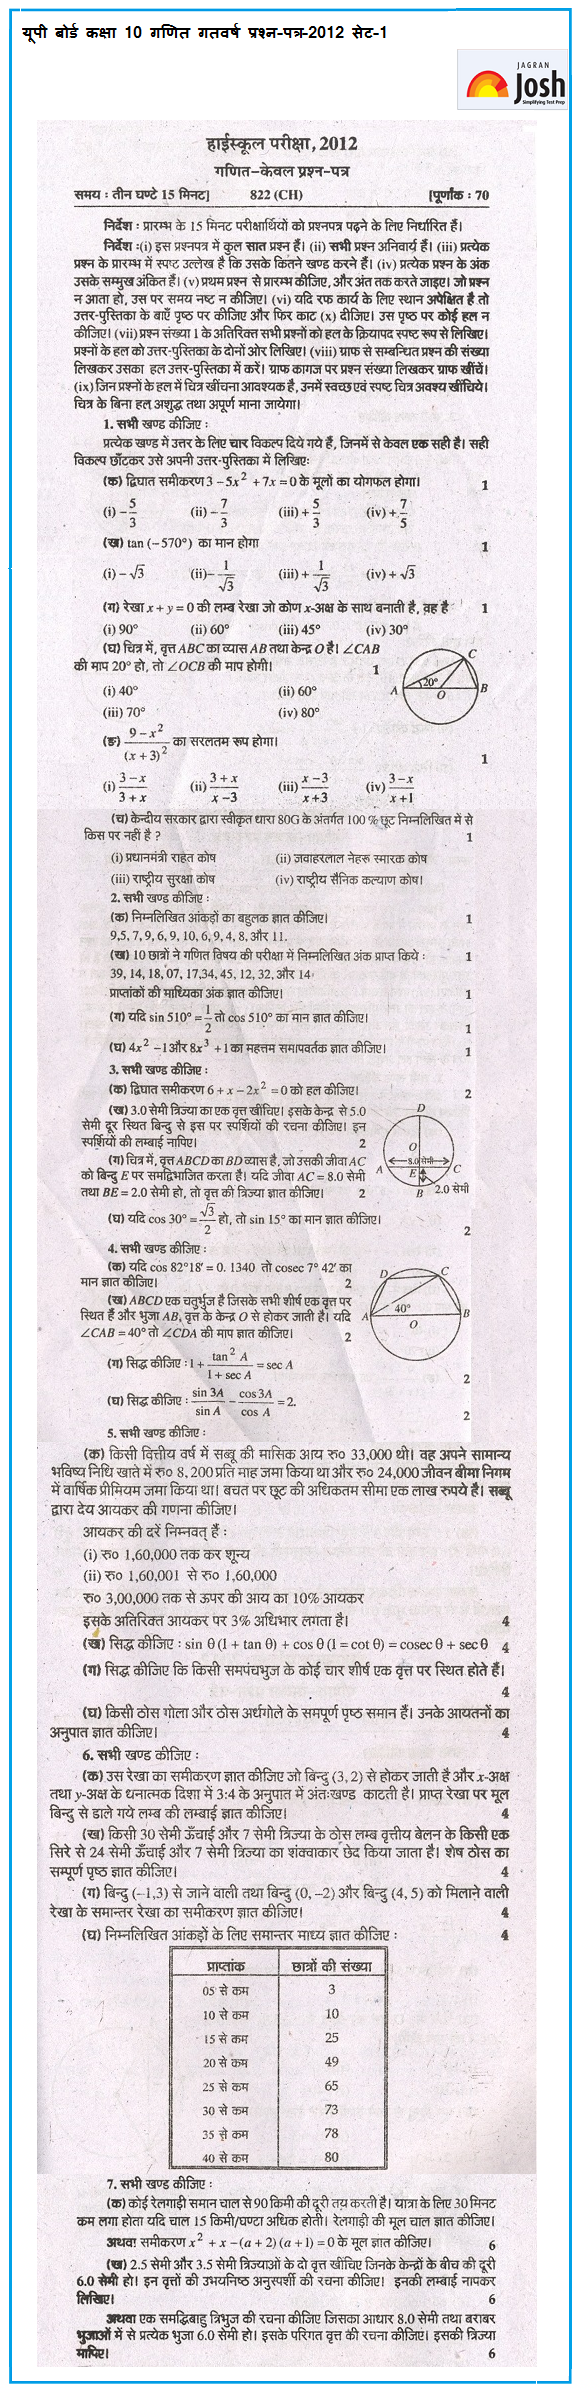 UP Board class 10th Mathematics Question Paper Set-1: 2012 | UP Board